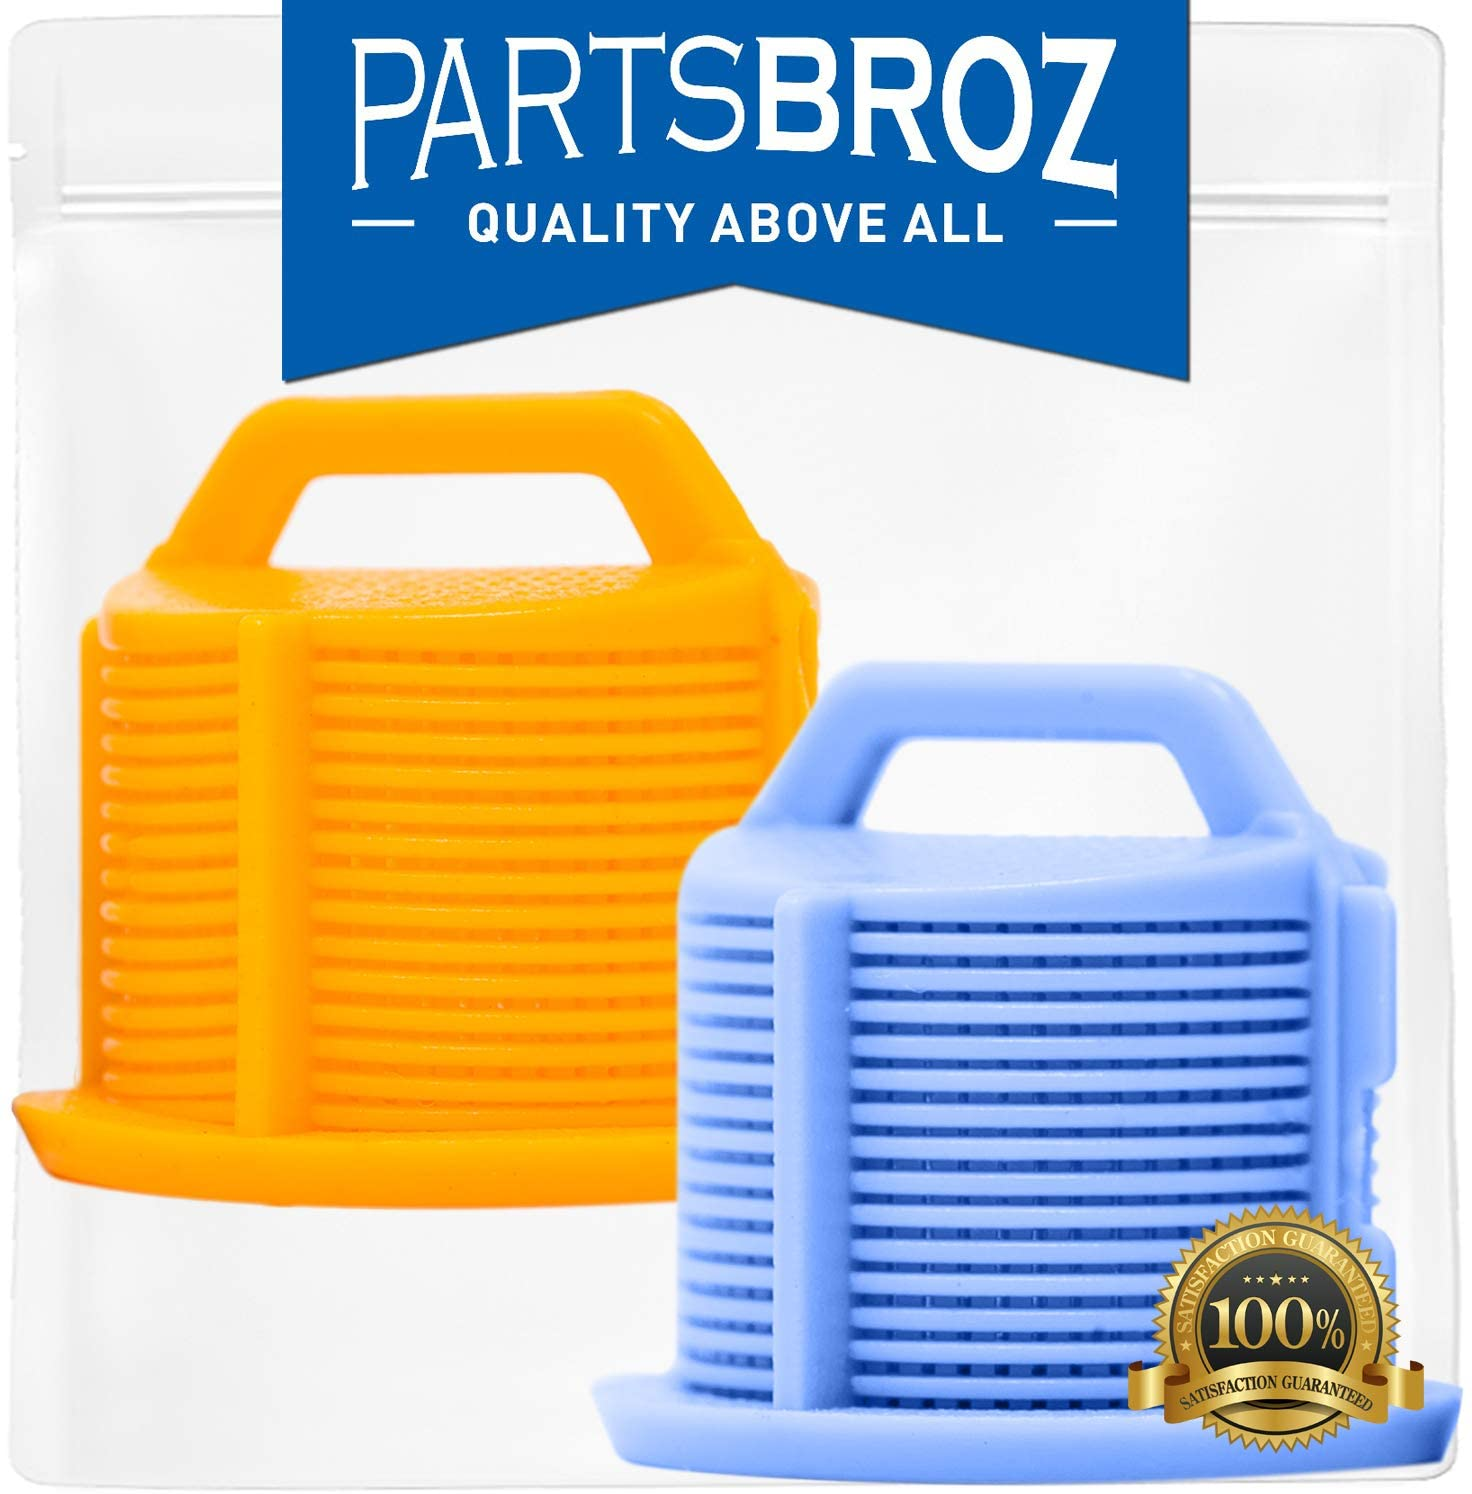 AGM73269501 Water Inlet Valve Filter Screens (2 Pieces) for LG Washers by PartsBroz - Replaces Part Numbers AP5202486, 1810261, AH3618281, EA3618281 & PS3618281